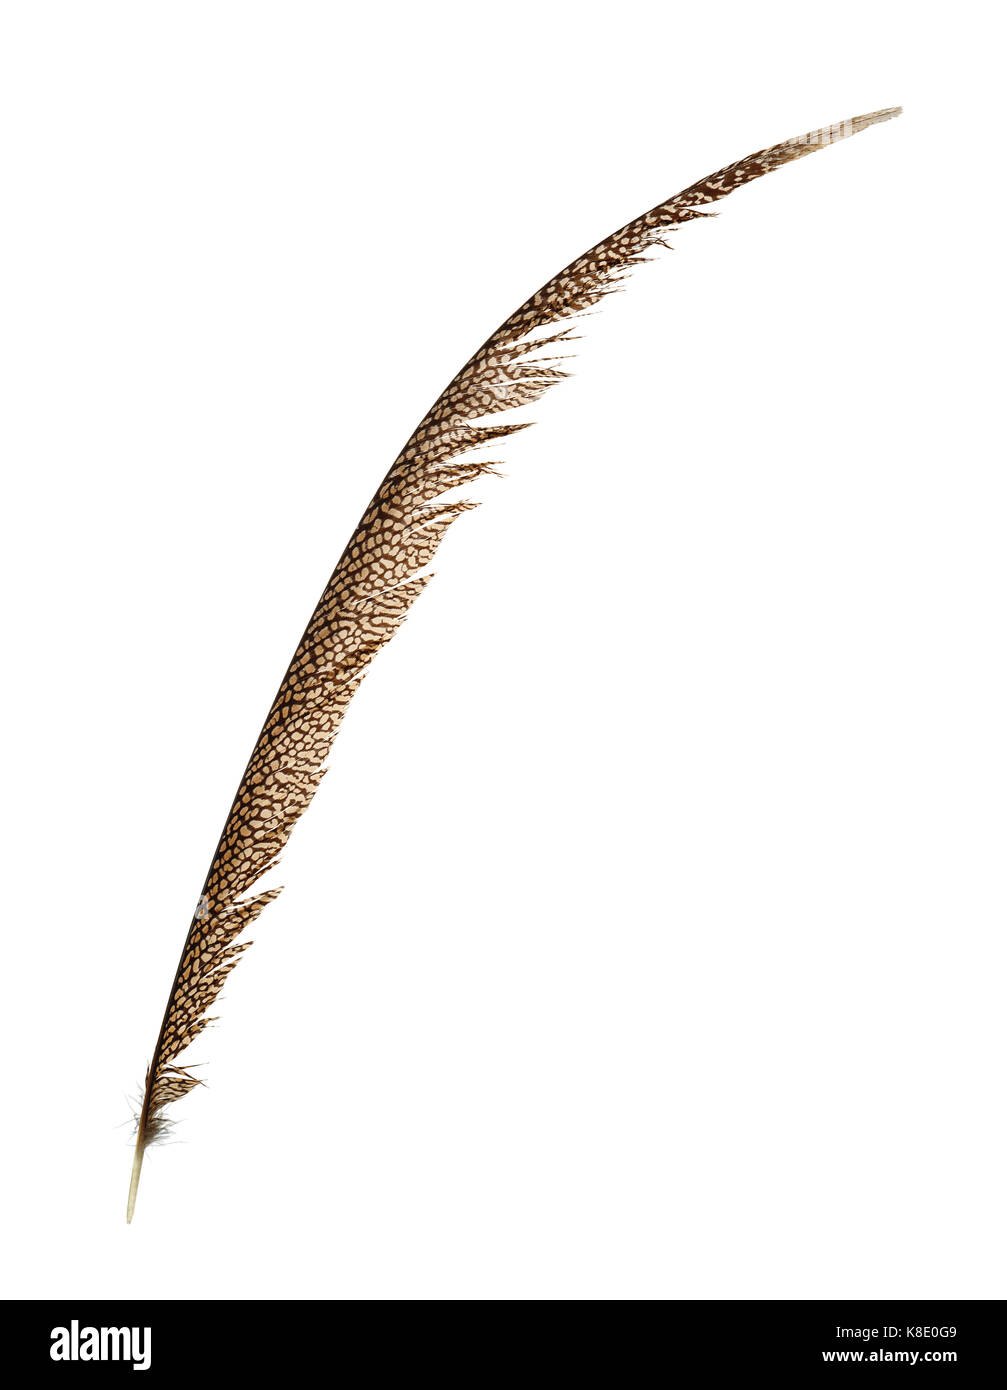 Pheasant tail feather isolated on white Stock Photo